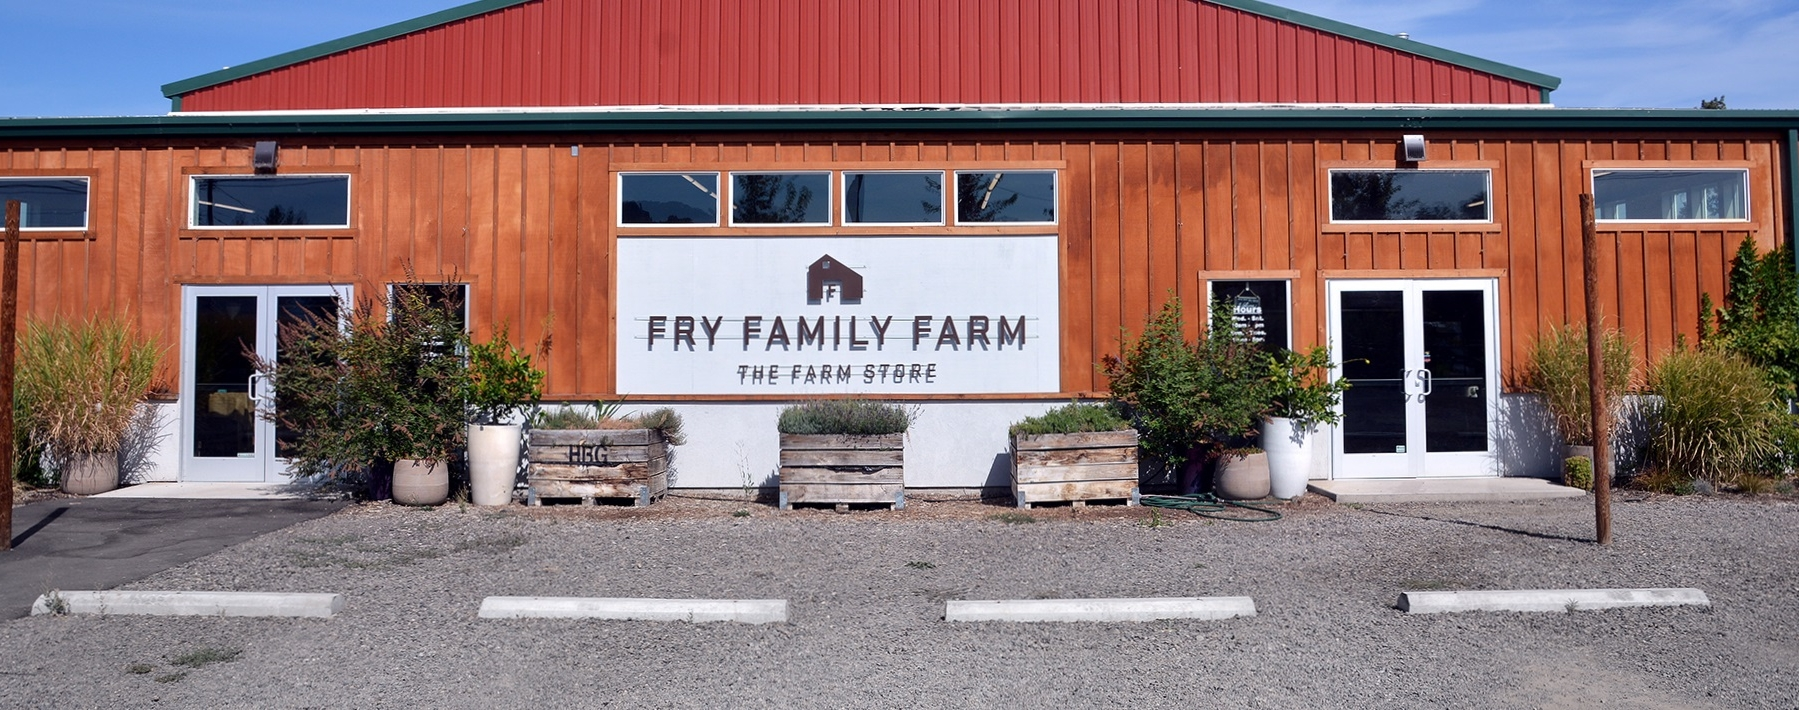 Process Facility and Farm Store